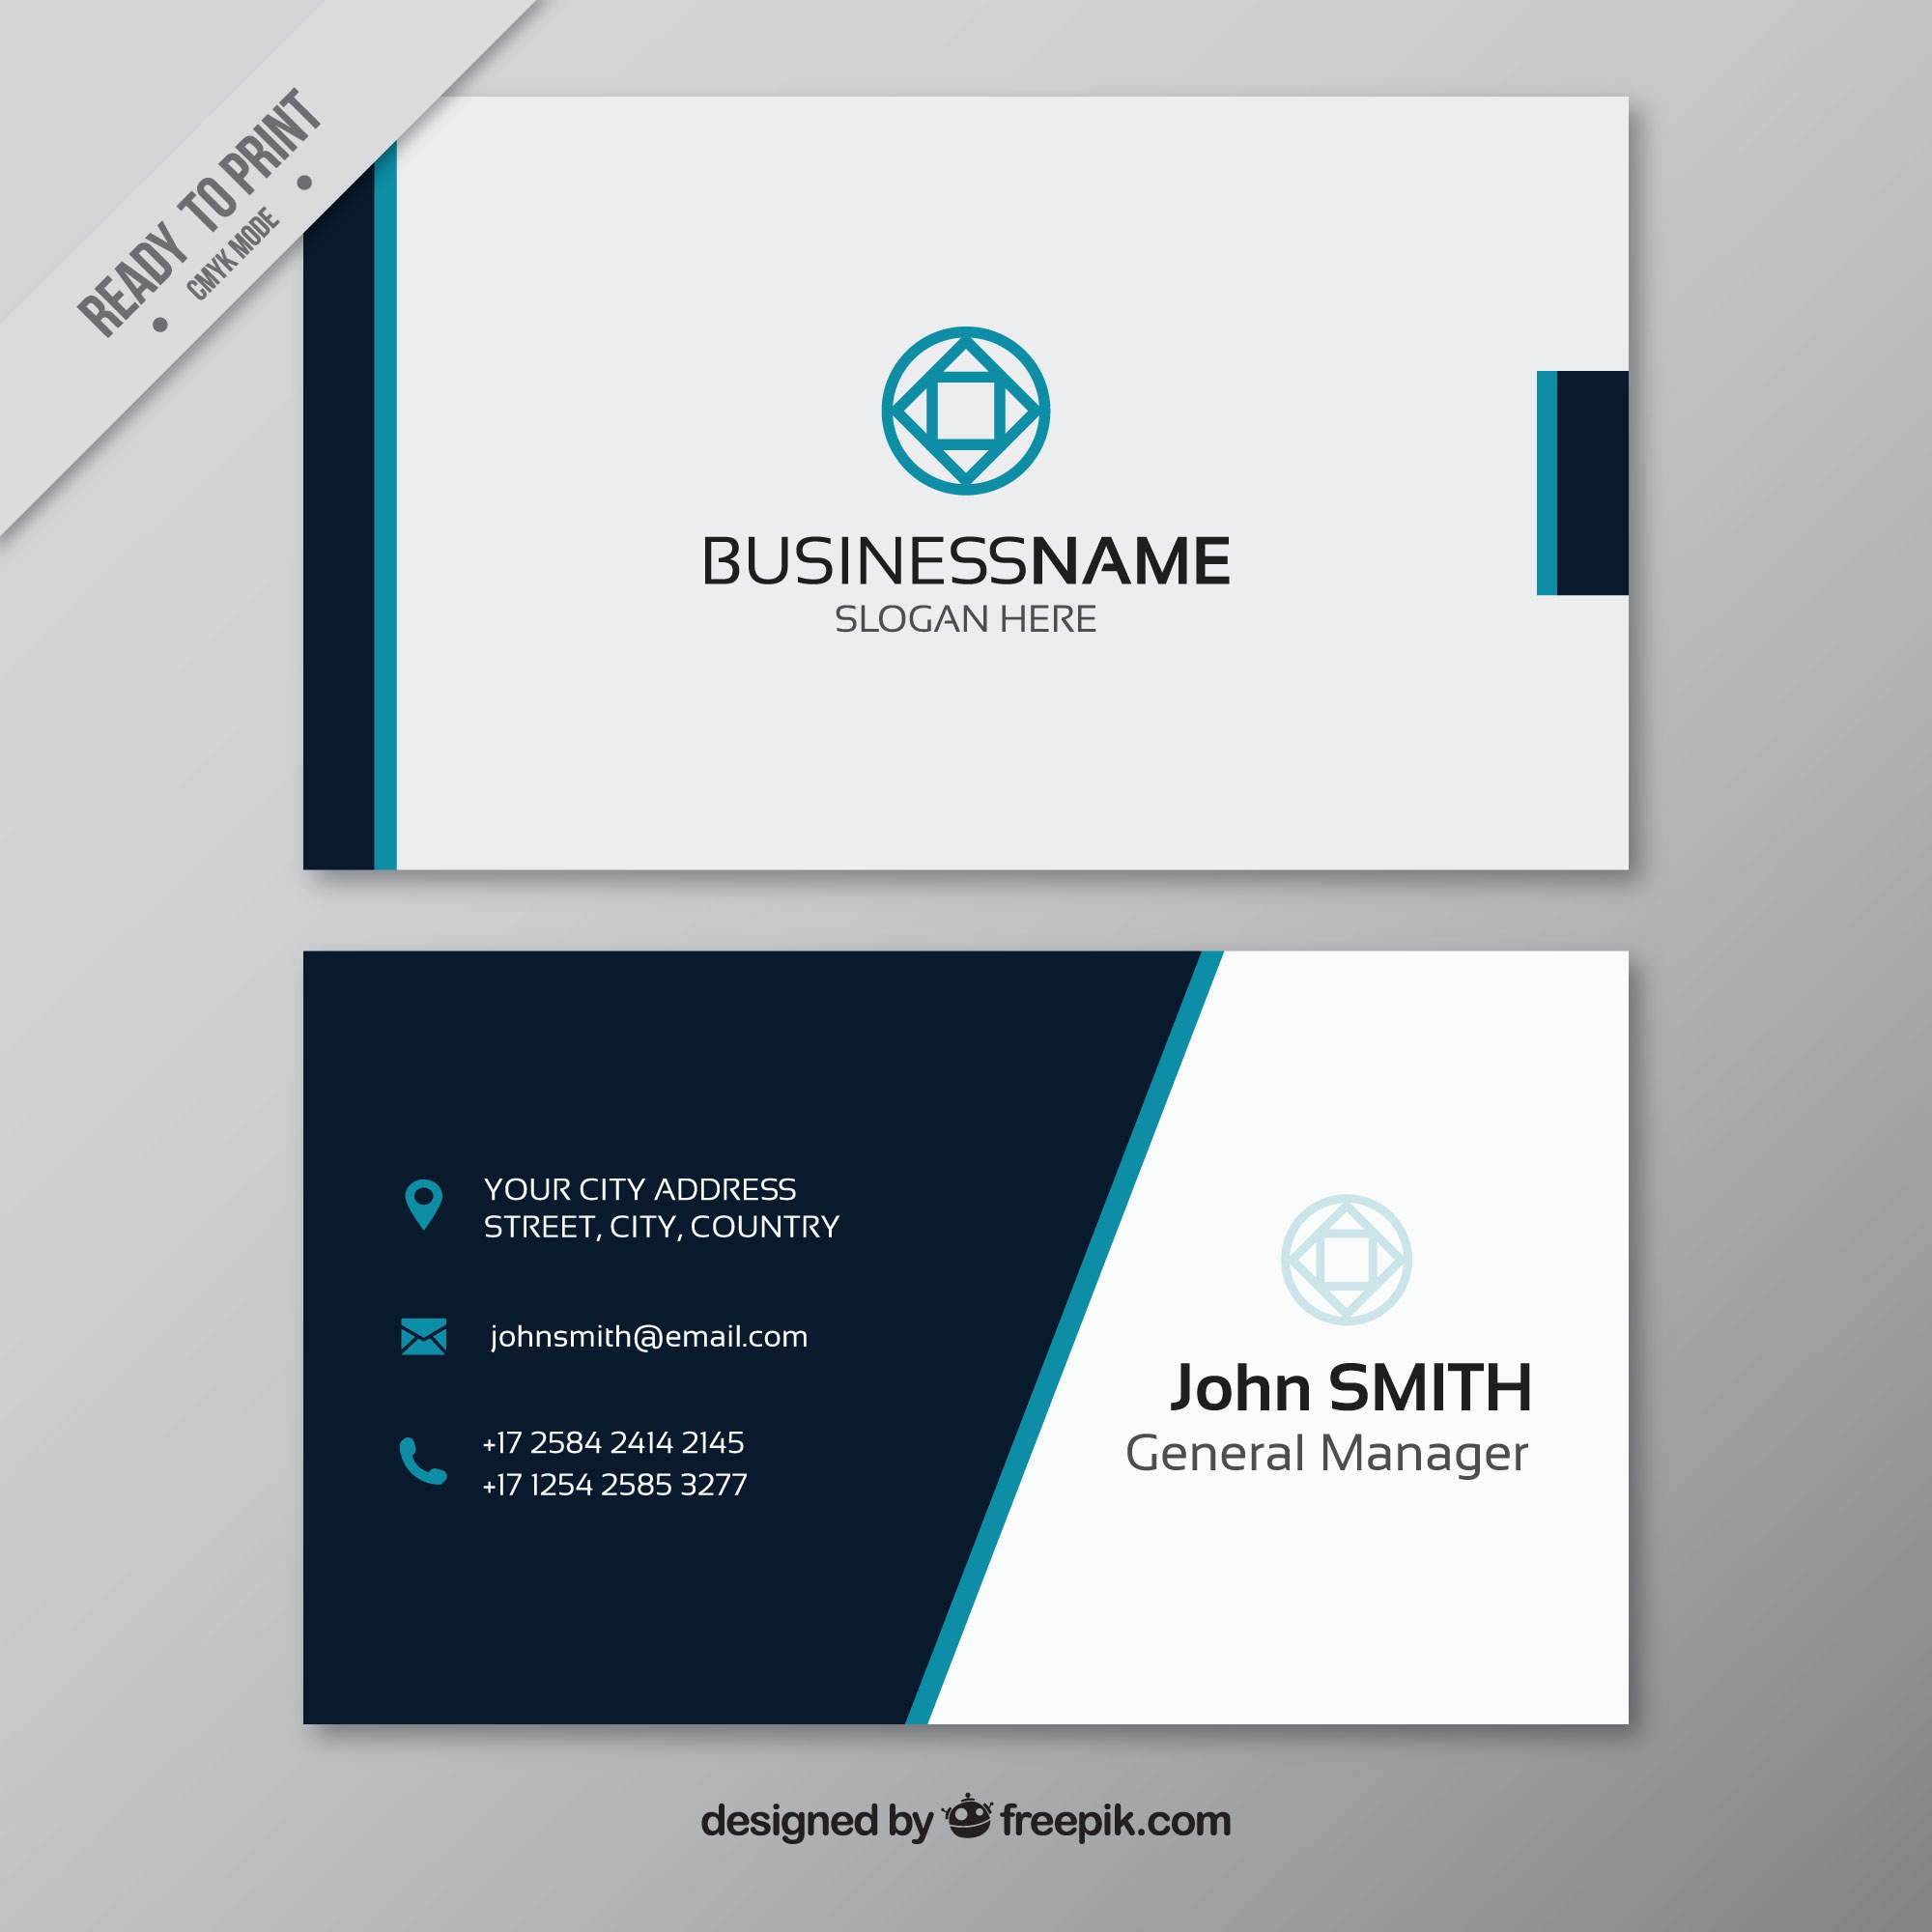 Business card with blue elements